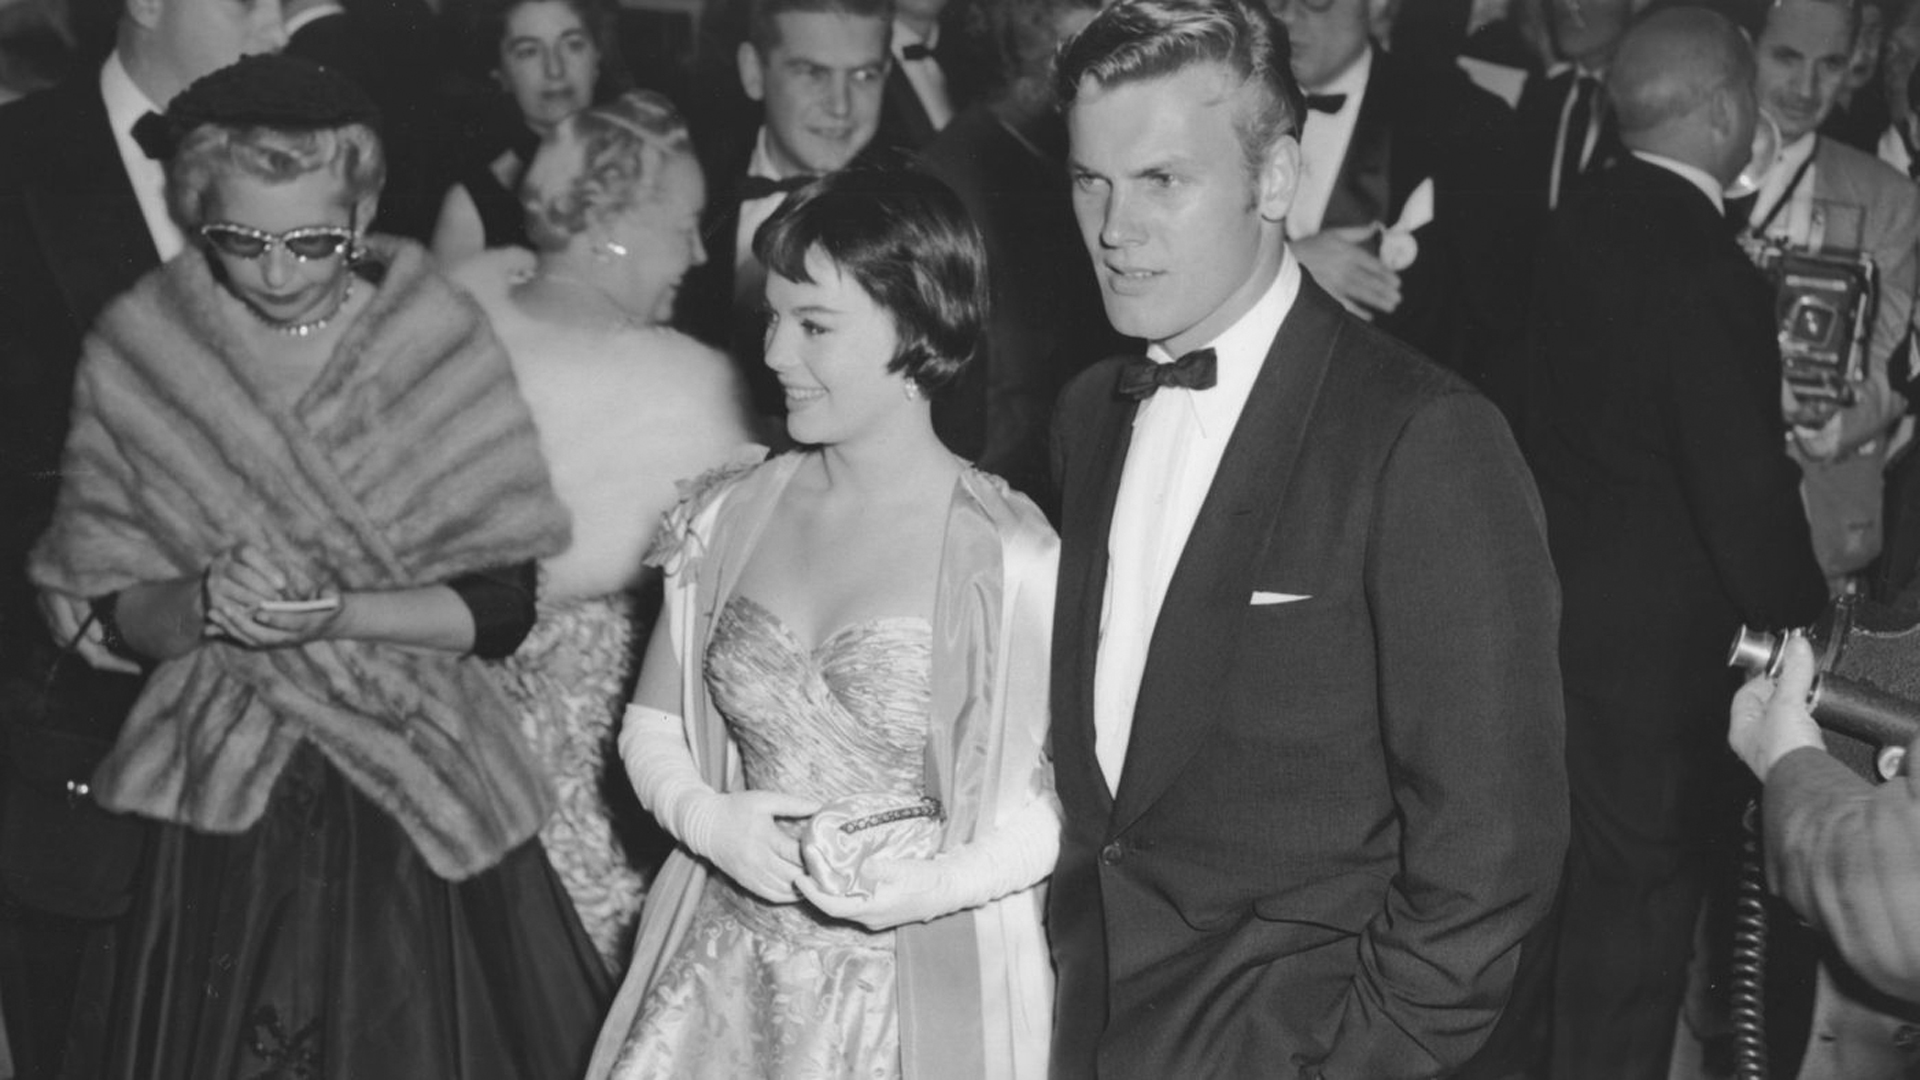 """Tab Hunter with Natalie Wood after she was Oscar-nominated for her supporting role in """"Rebel Without a Cause."""" (Credit: Los Angeles Times)"""